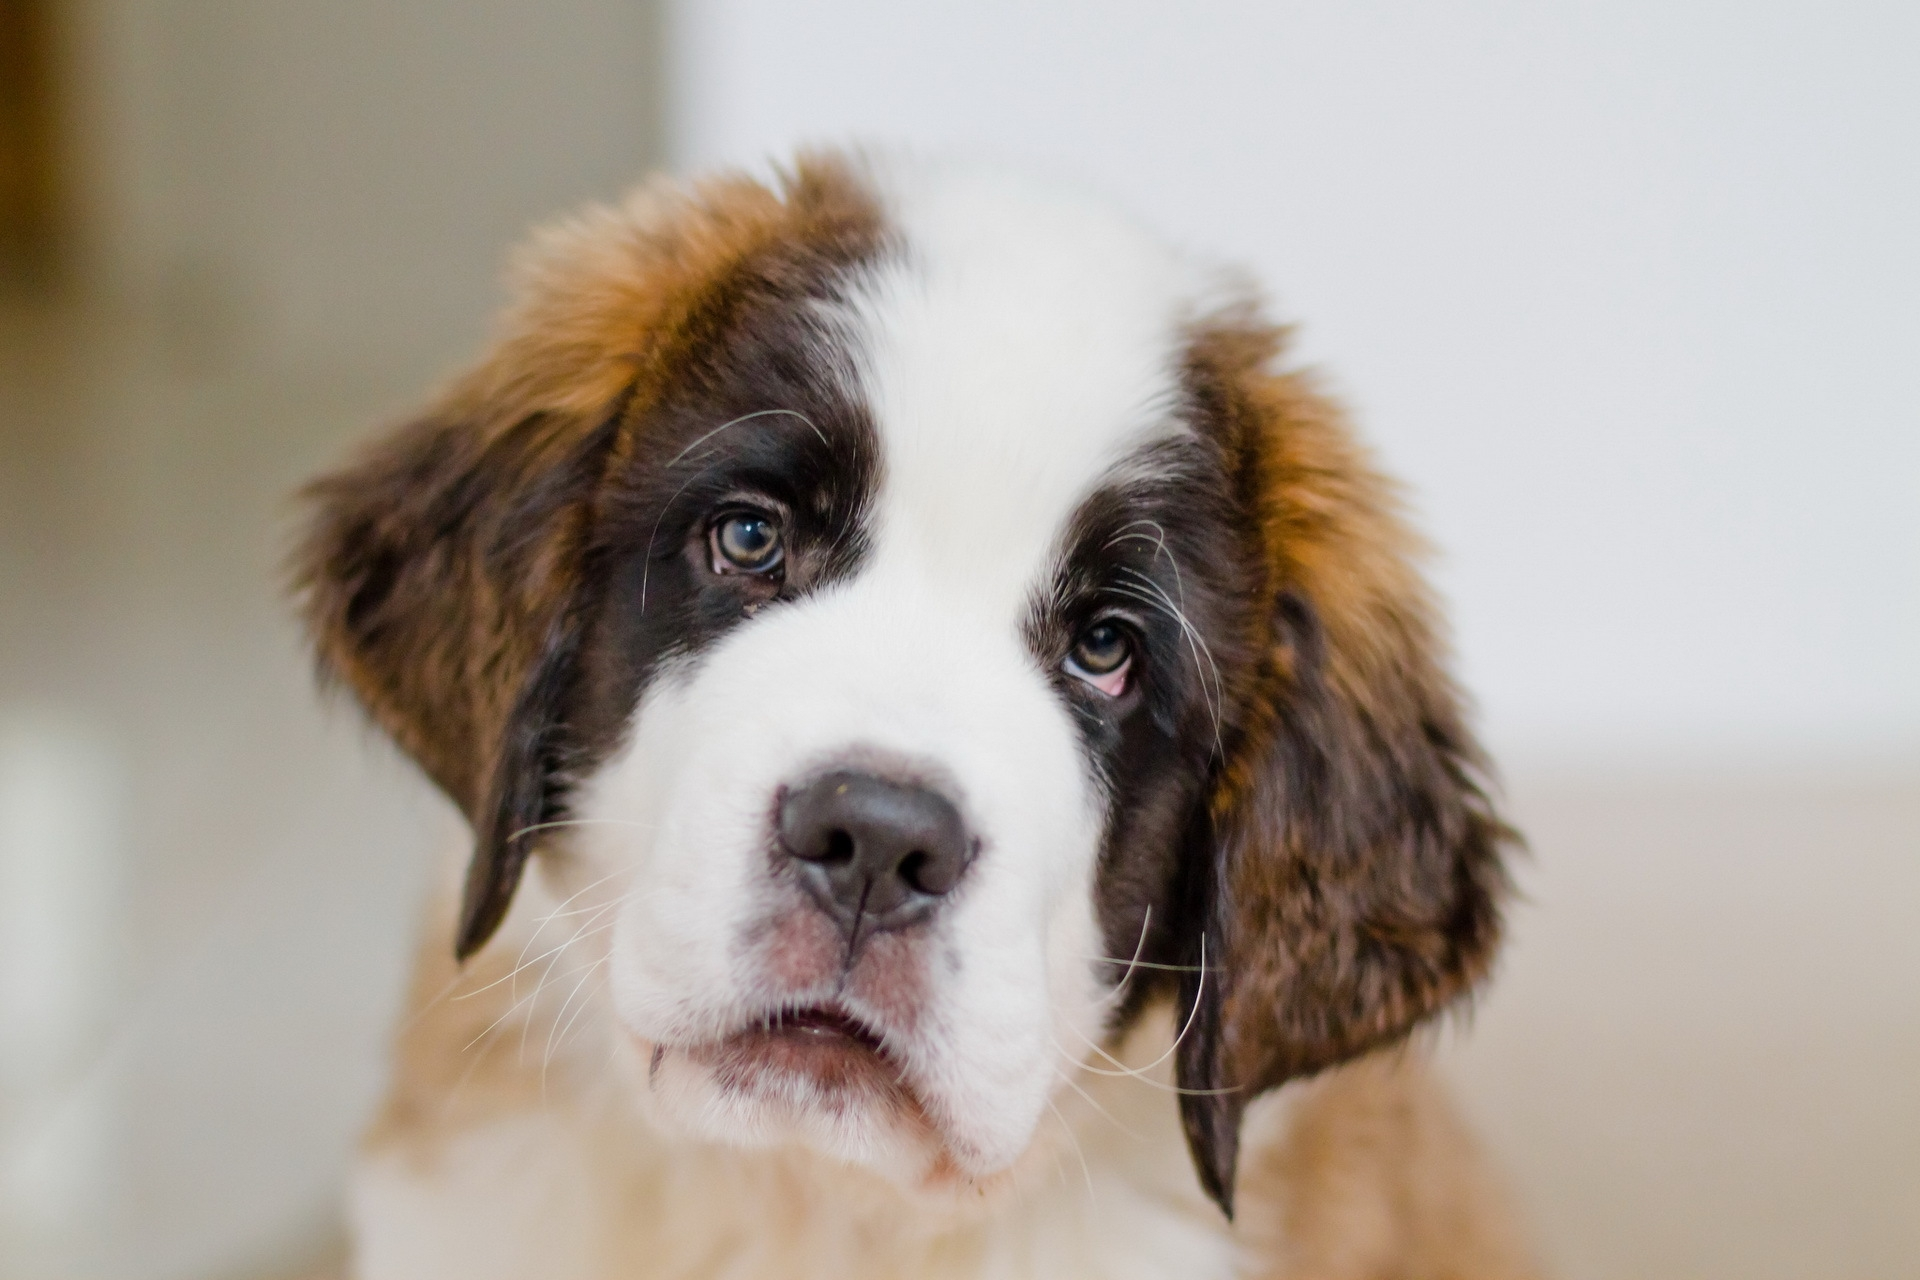 127599 download wallpaper Animals, Puppy, St. Bernard, Saint Bernard, Muzzle, Sight, Opinion screensavers and pictures for free